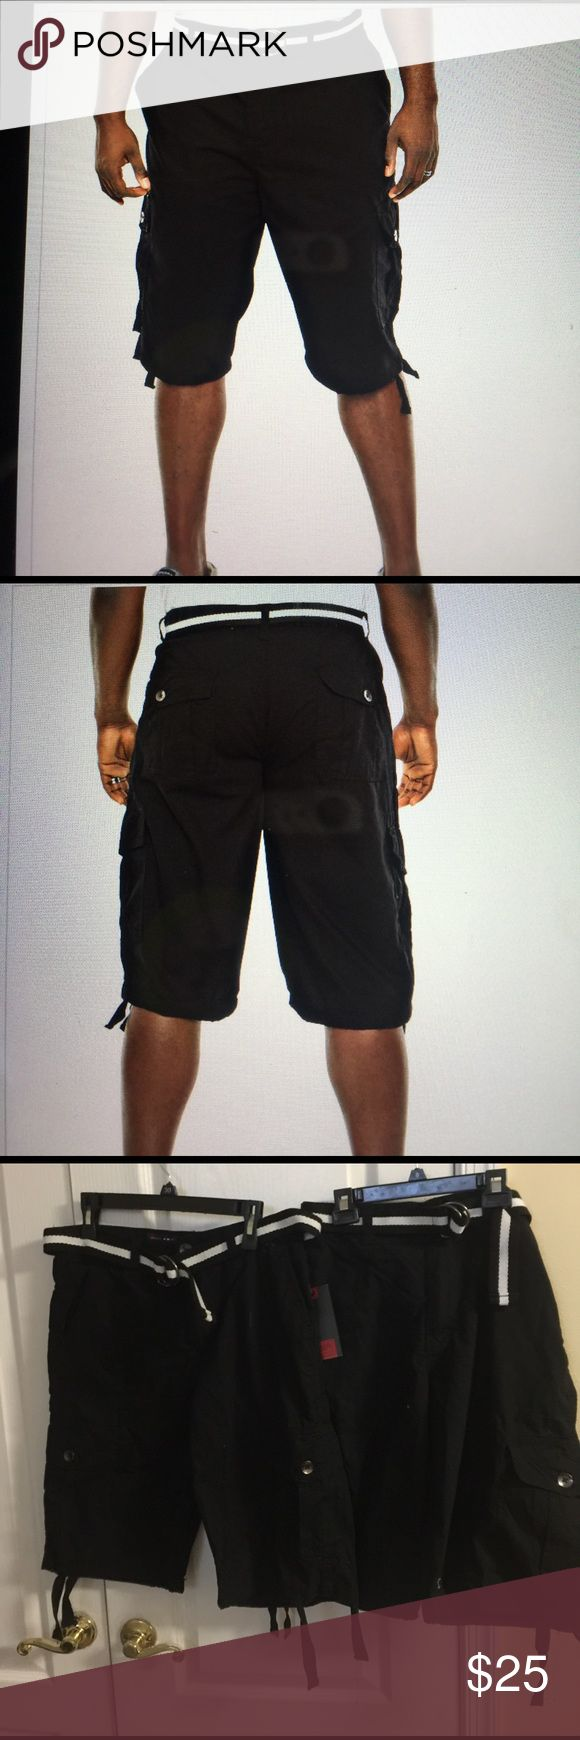 South Pole Belted rips top cargo short black With plenty of storage for any need, this soft cotton cargo shorts are perfect for a day on the go. Relaxed fit, zip and button closure, Belted, 5 pocket styling, cargo pockets and straight leg. South Pole Shorts Cargo